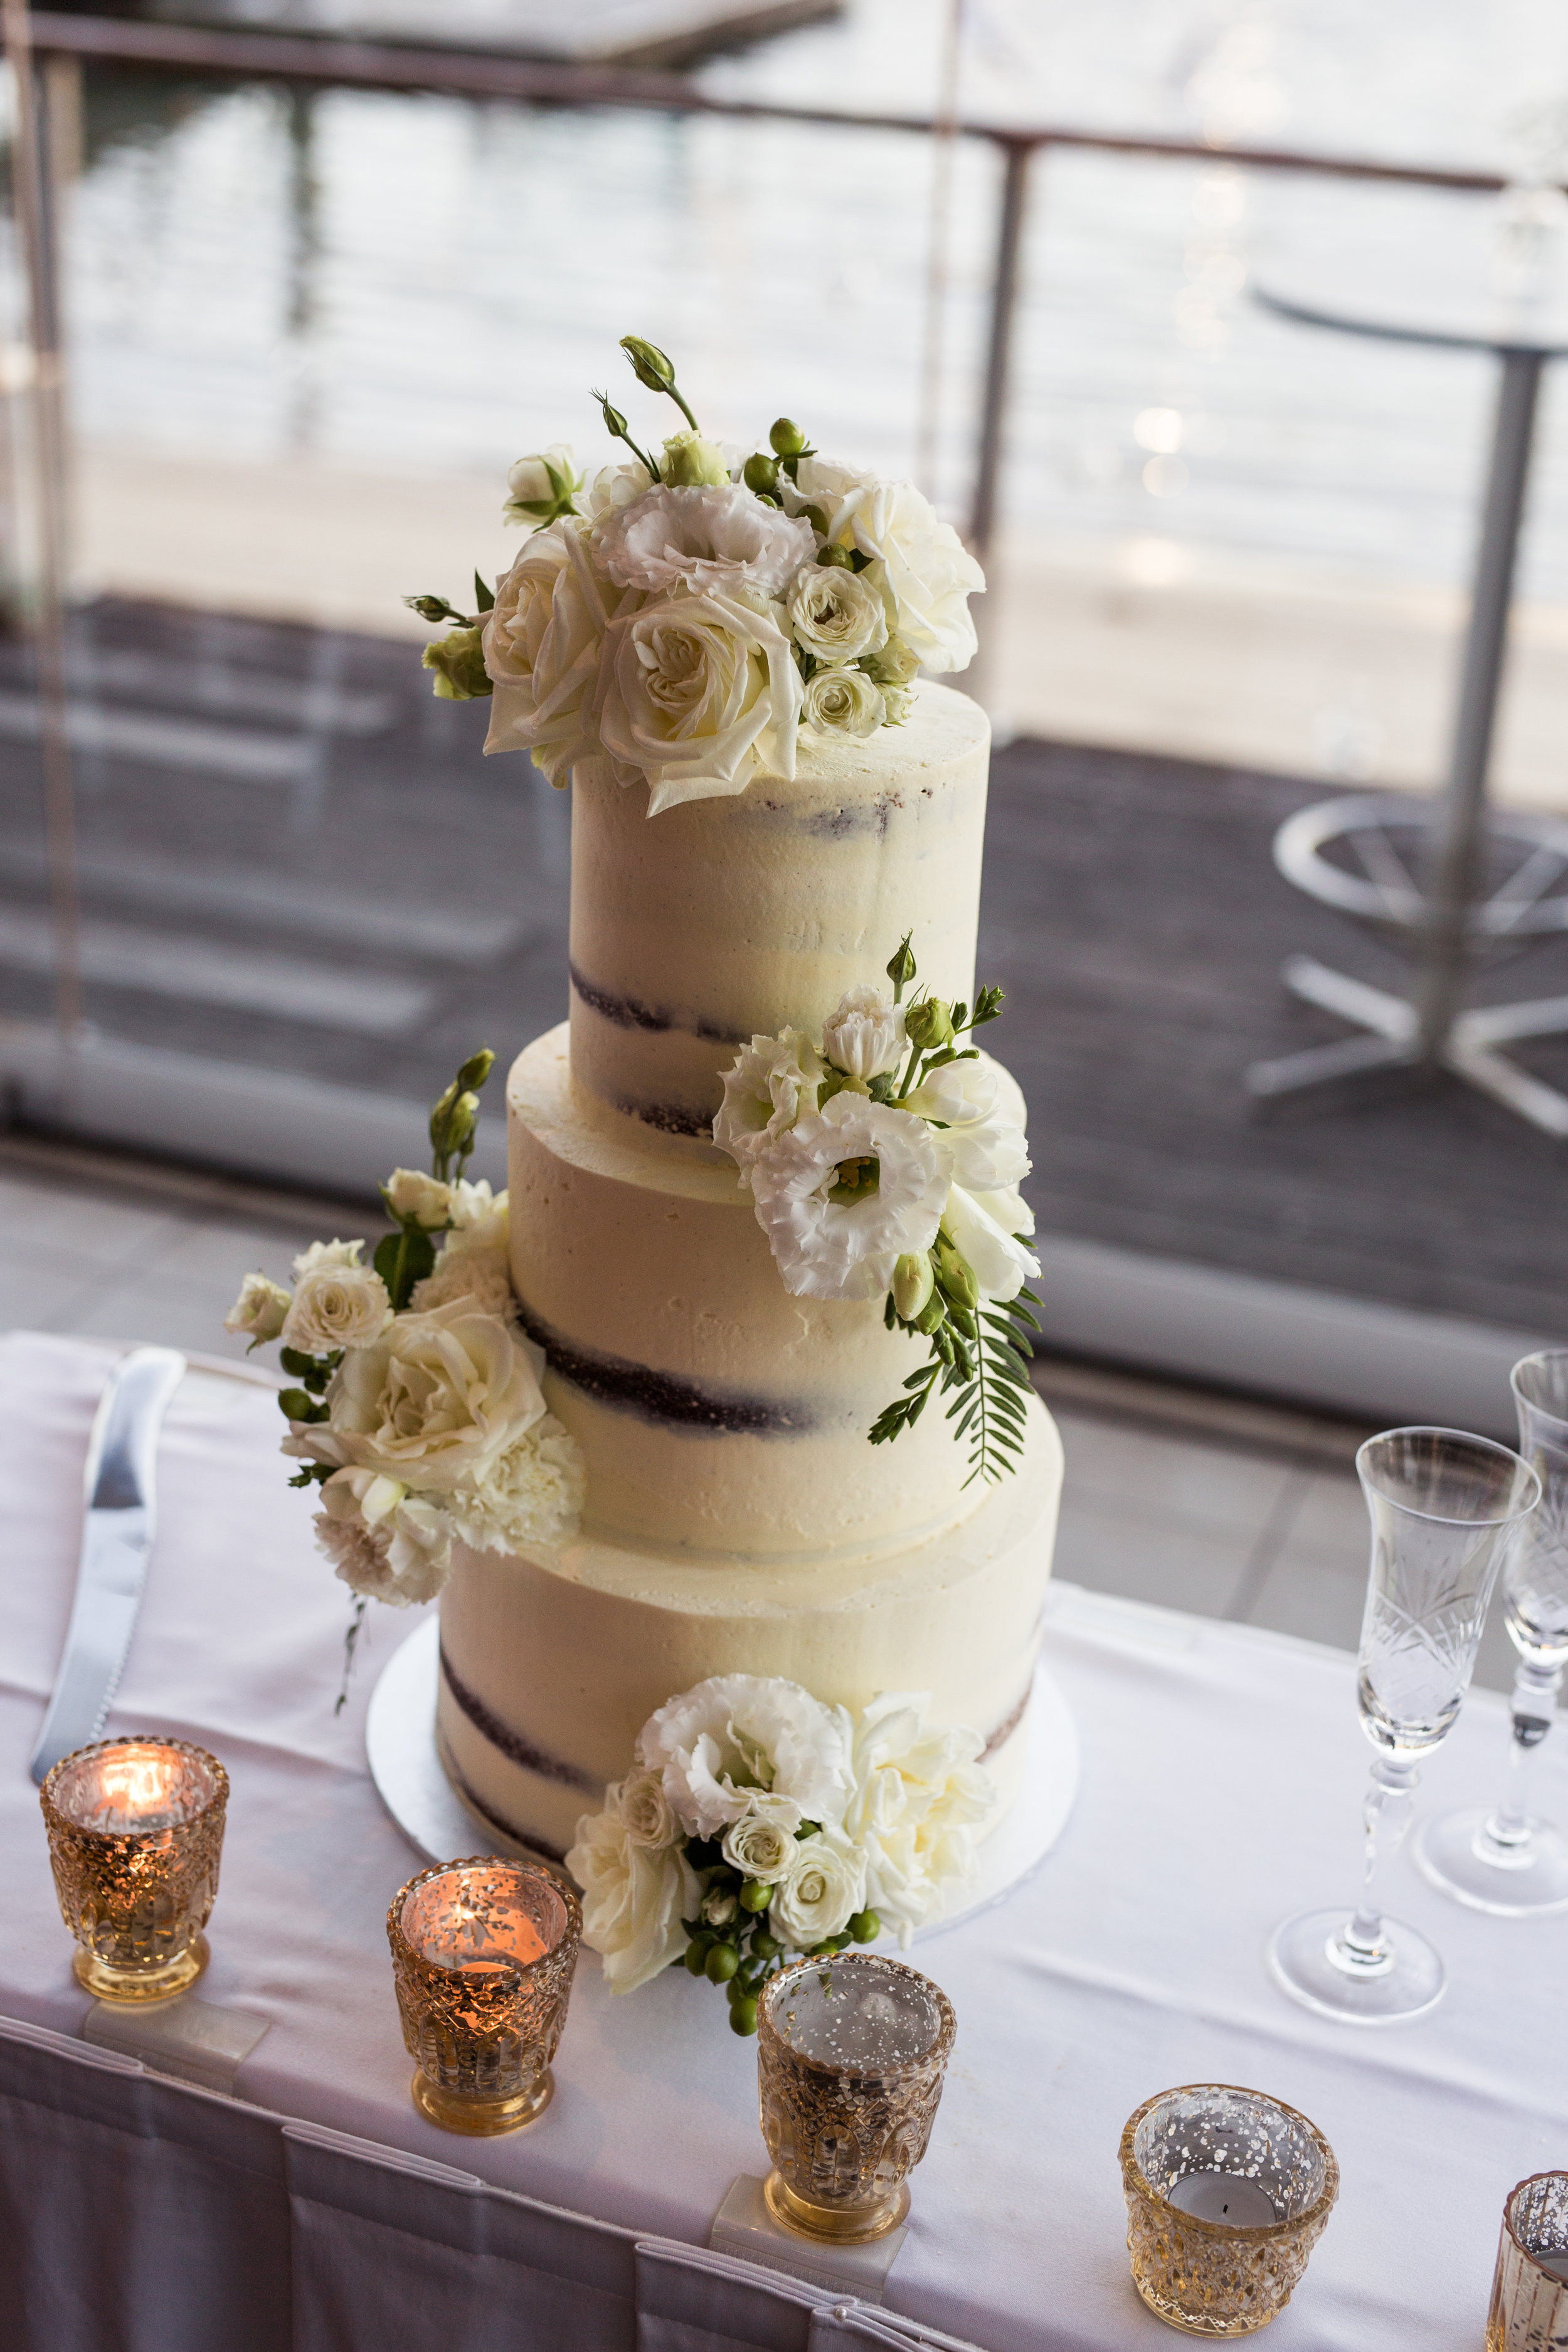 Three tiered Cakes from $500 - Two sizes available feeding between 90 - 120 guests